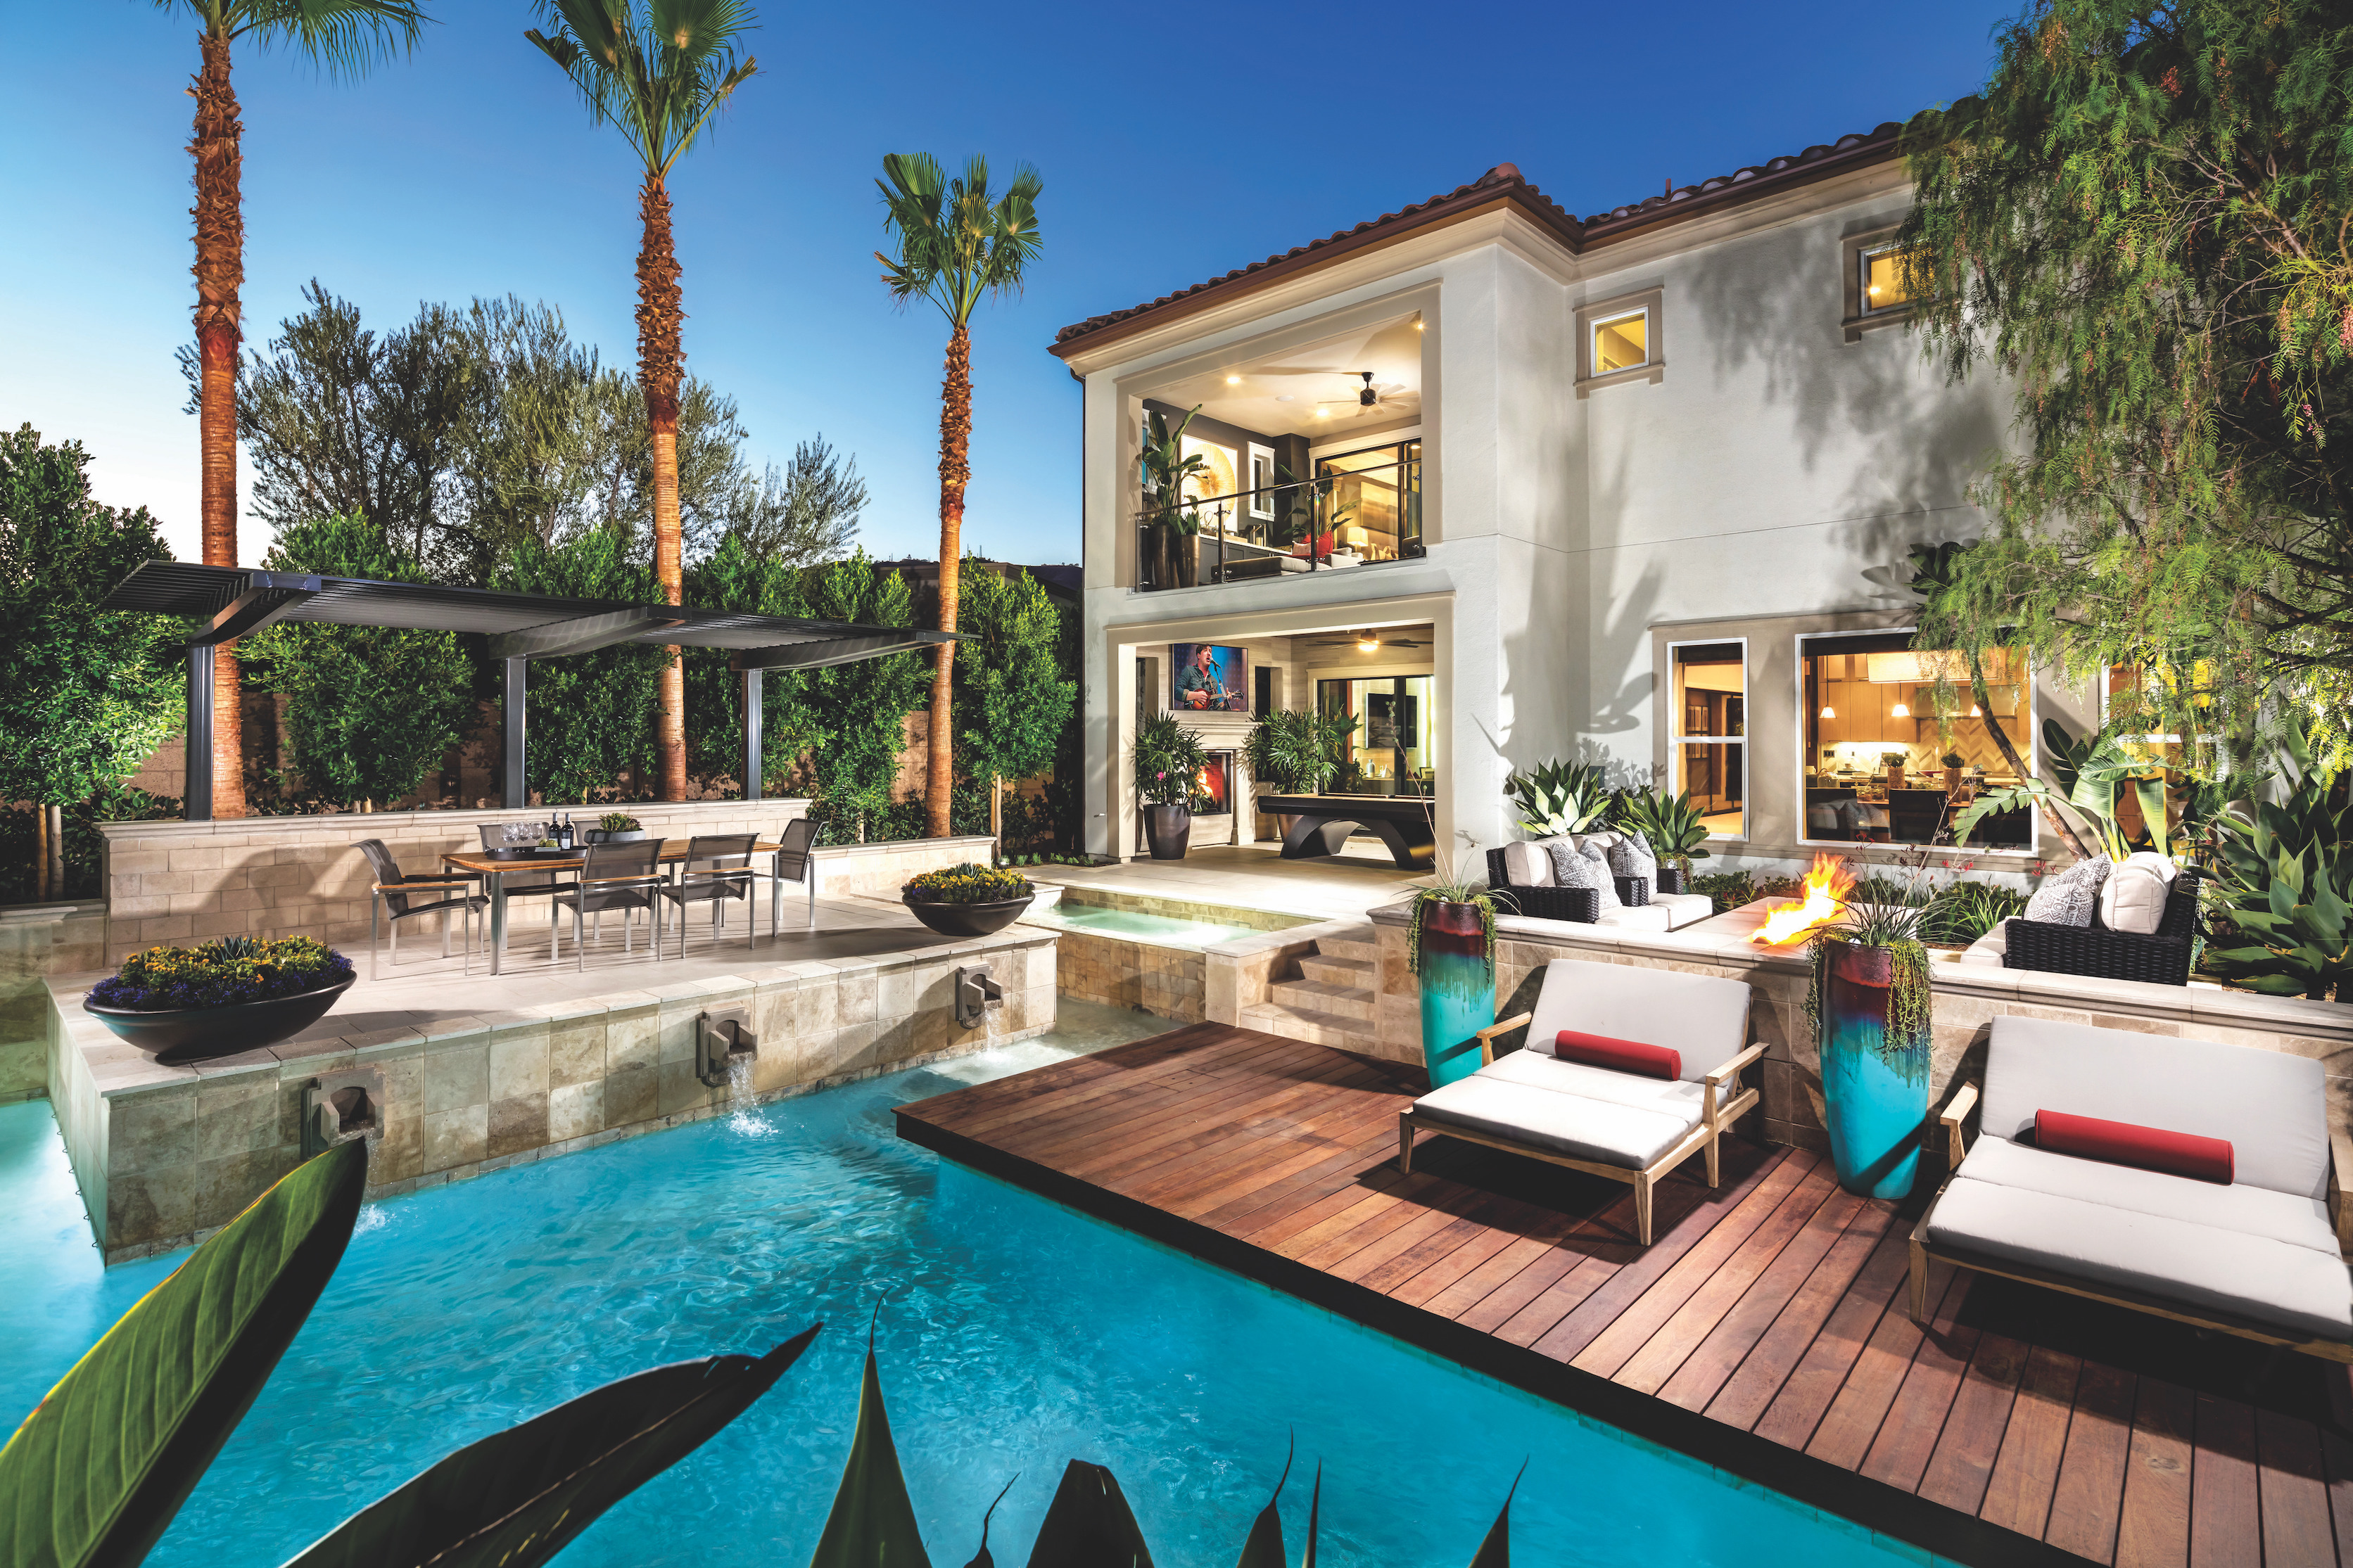 A luxurious backyard with a pool and outdoor lighting.